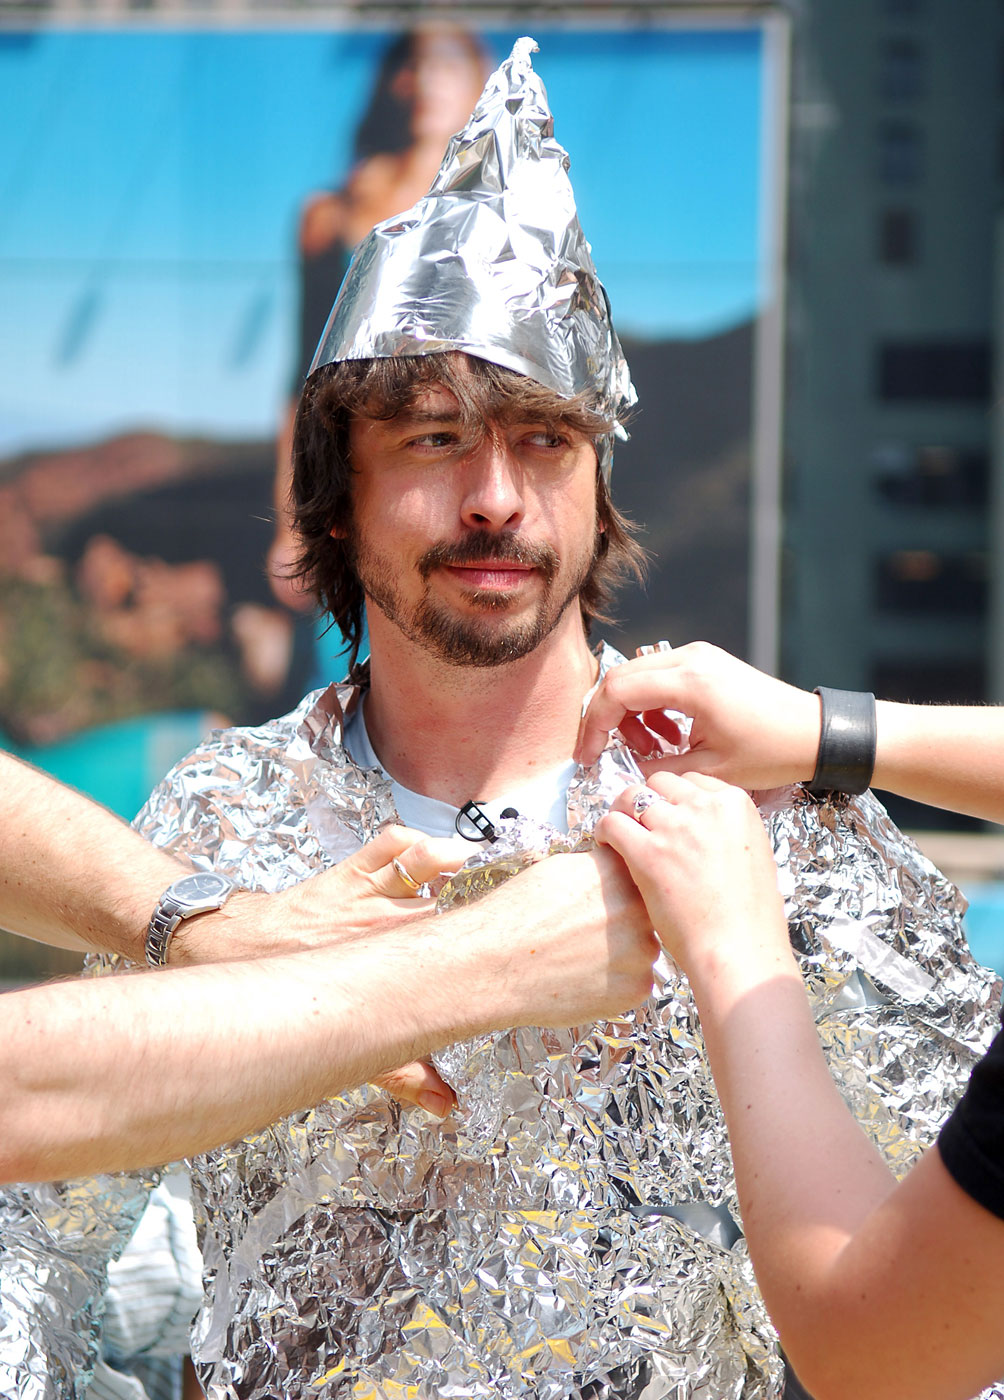 """Dave Grohl of the Foo Fighters during the Foo Fighters Take Over MTV2 """"24 Hours of Foo"""" in New York City on June 11, 2005."""